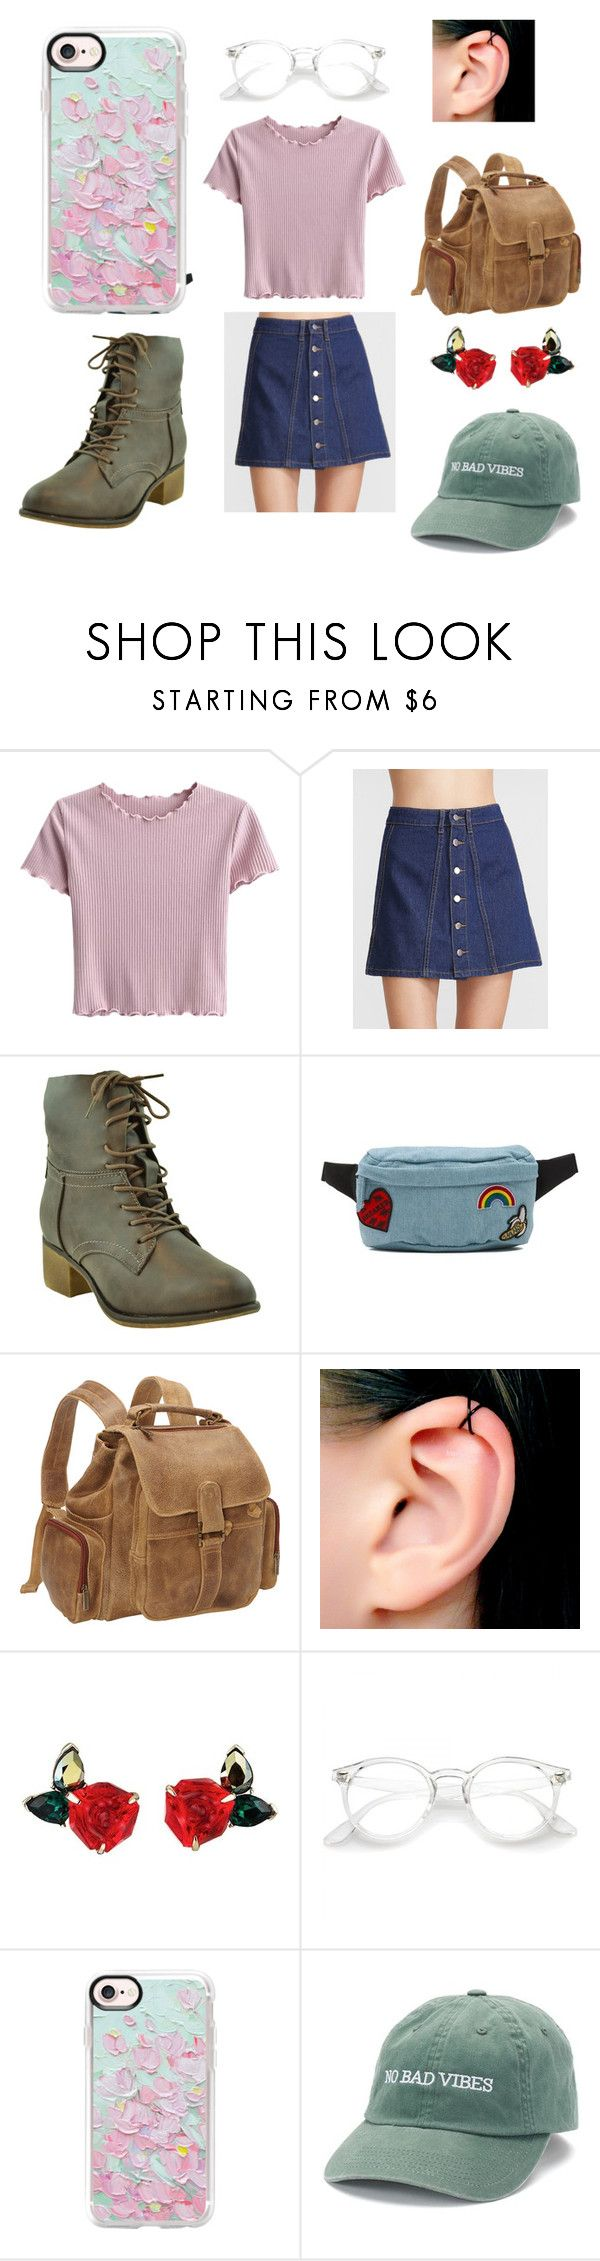 """No Bad Vibes"" by legendofchelda on Polyvore featuring Vans, Le Donne, Casetify, cute, pretty and nobadvibes"